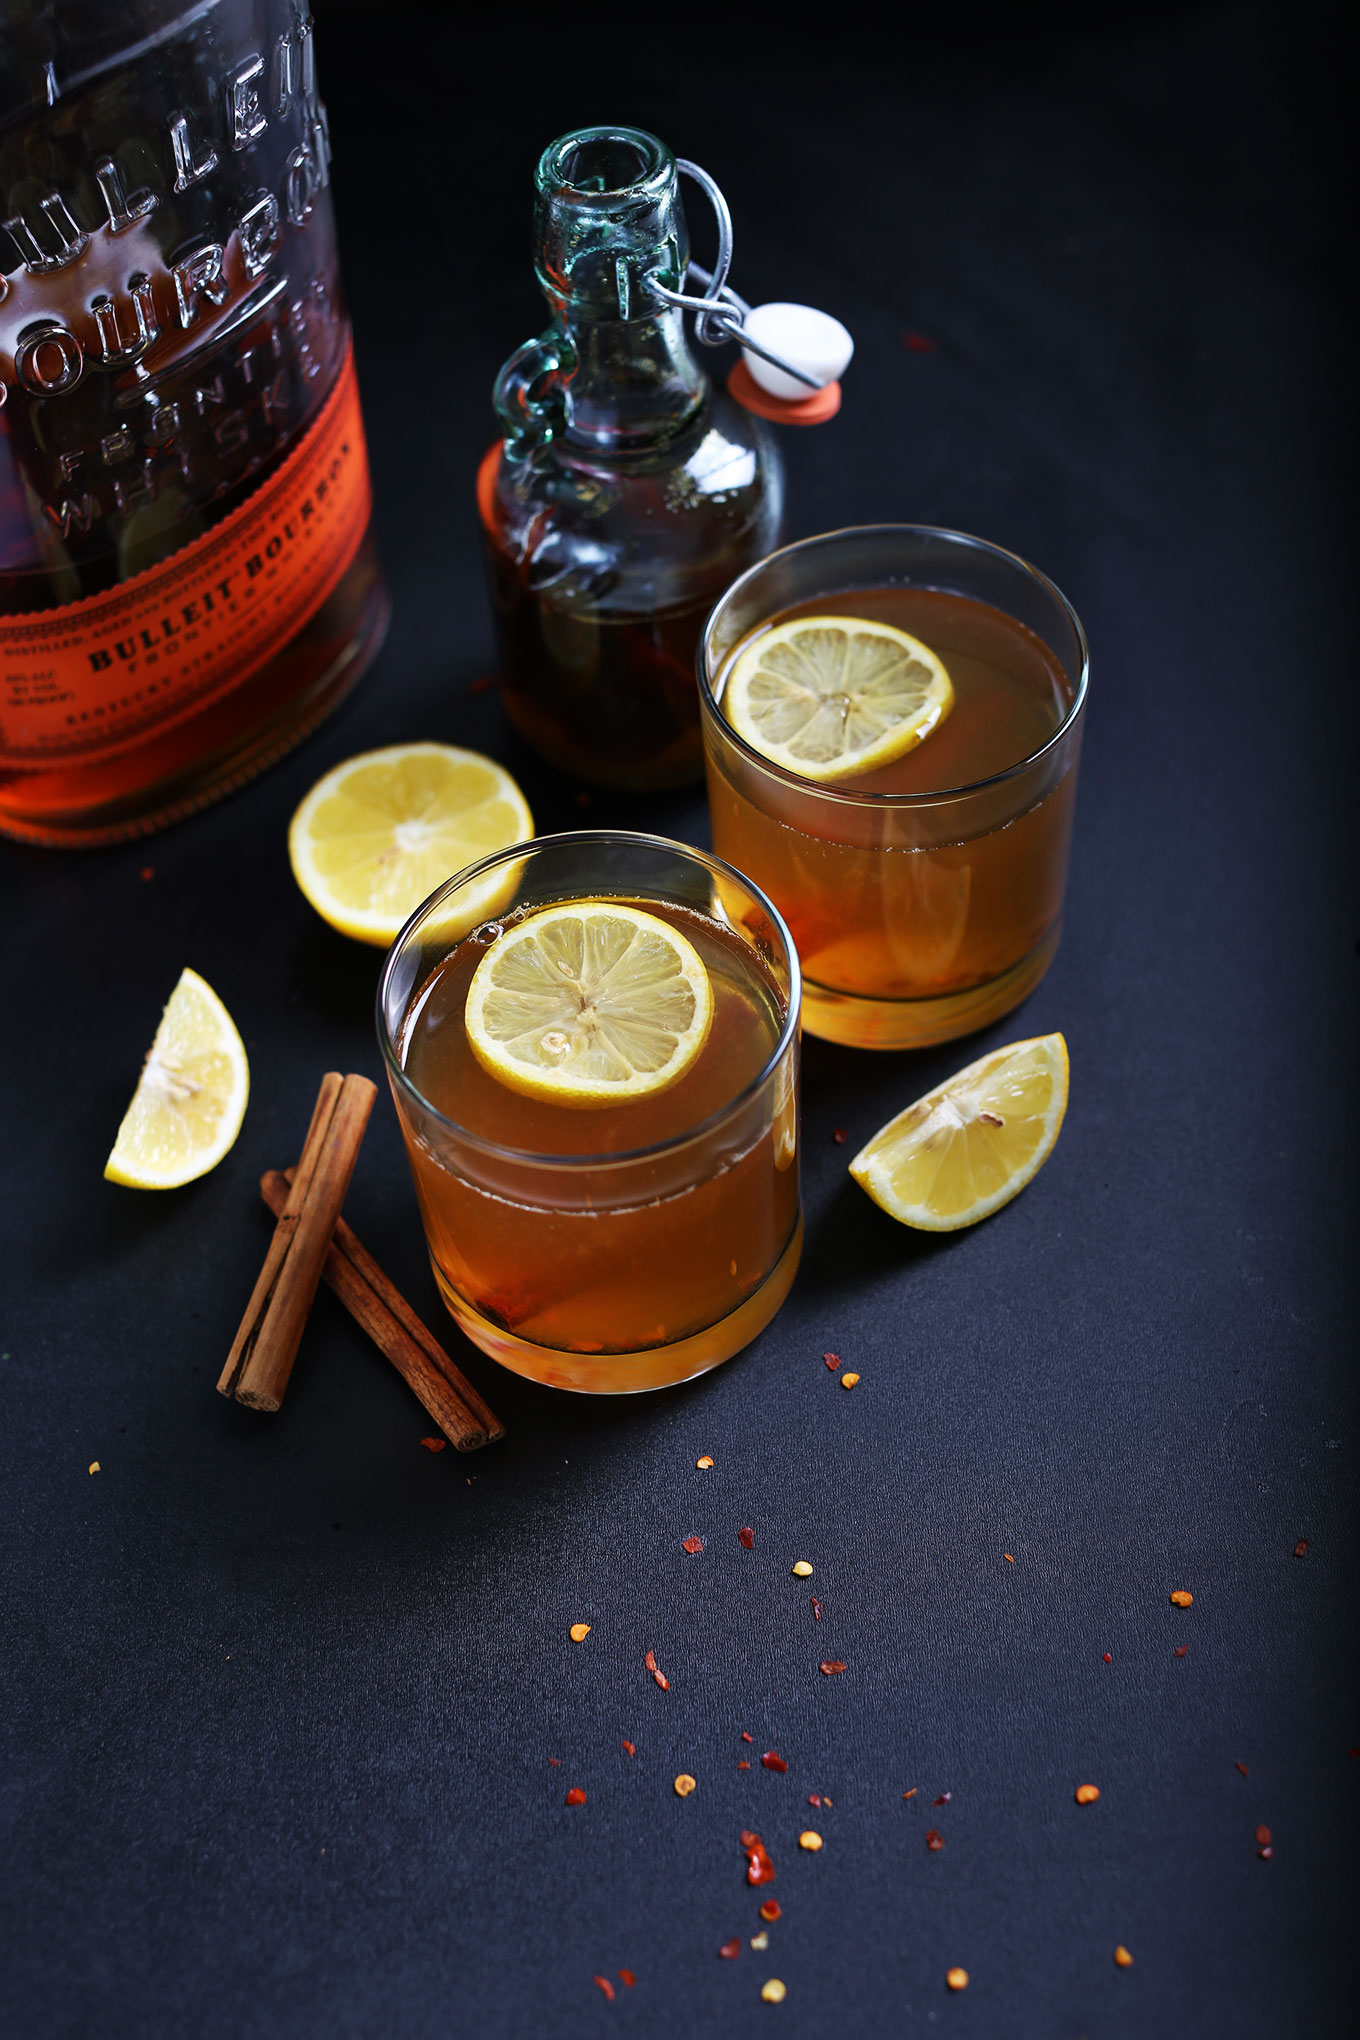 Glasses of our sweet and soothing Chili Cinnamon Hot Toddy recipe made with Bourbon and Lemon